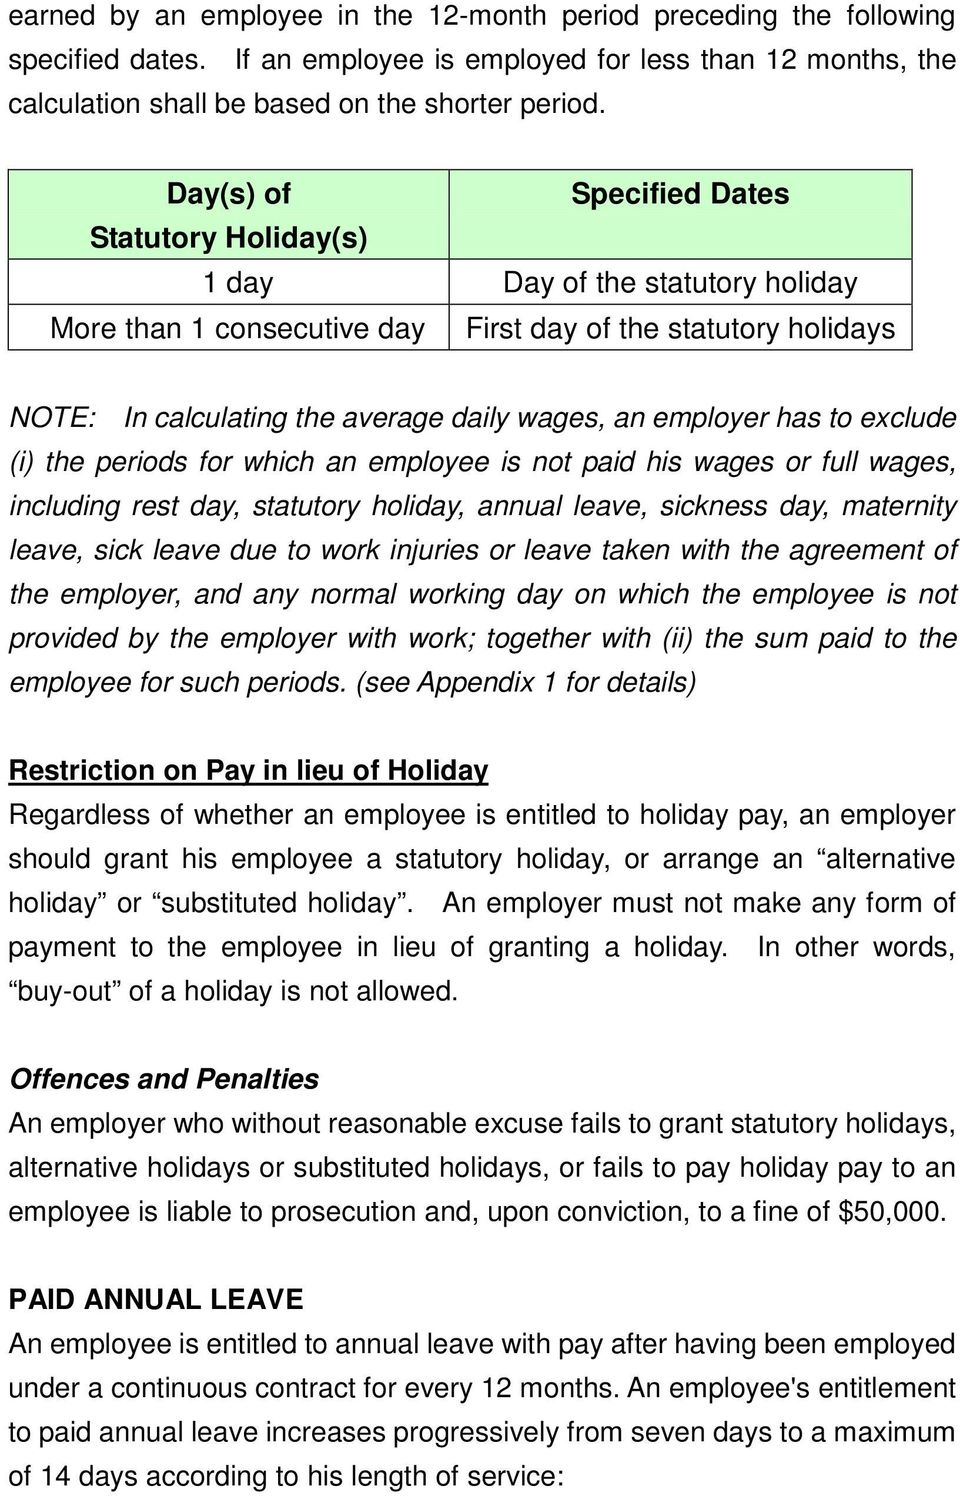 employer has to exclude (i) the periods for which an employee is not paid his wages or full wages, including rest day, statutory holiday, annual leave, sickness day, maternity leave, sick leave due